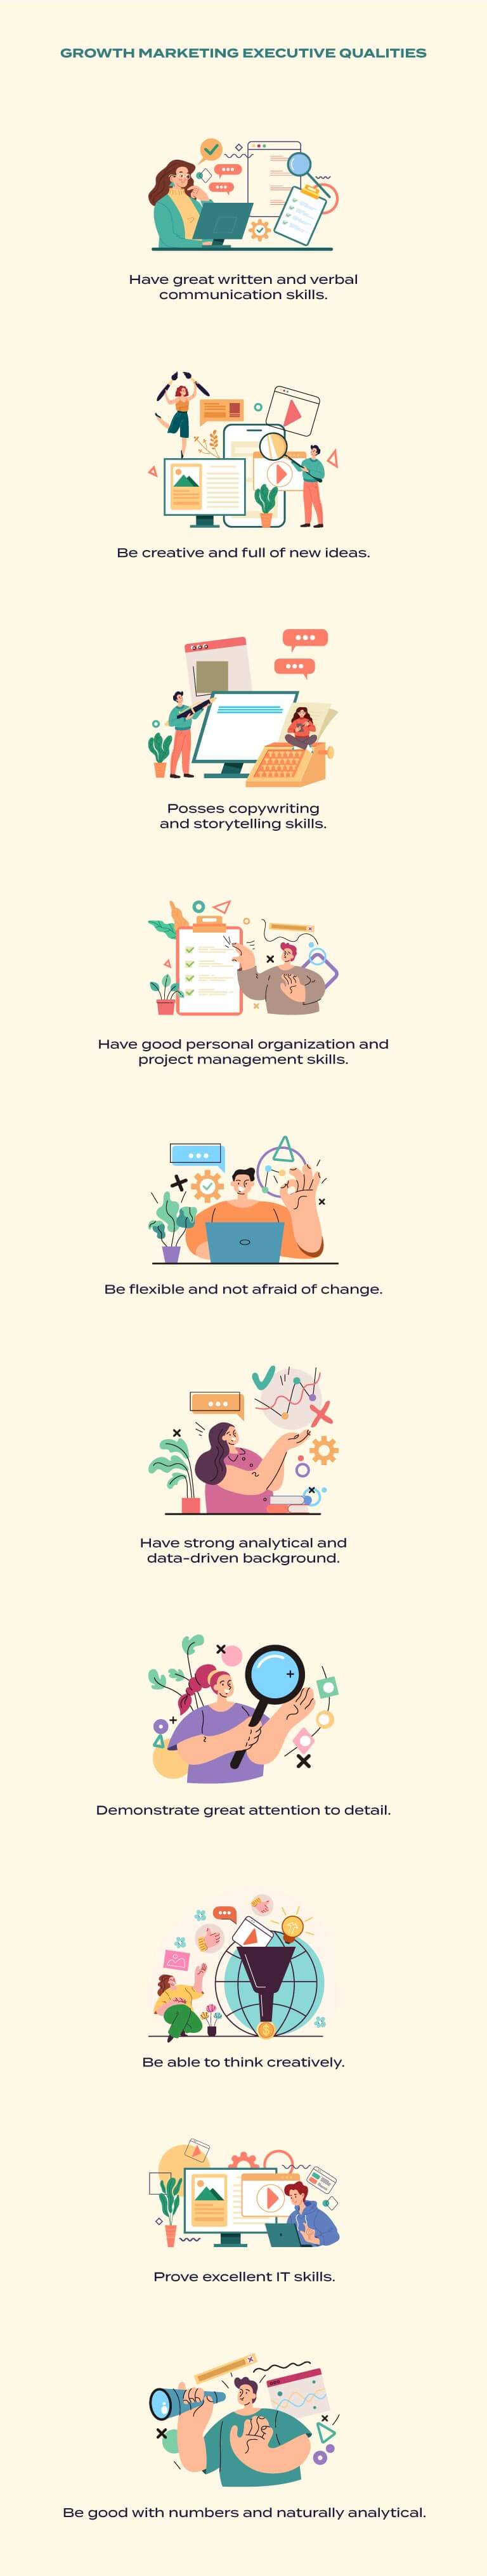 growth marketing manager qualities